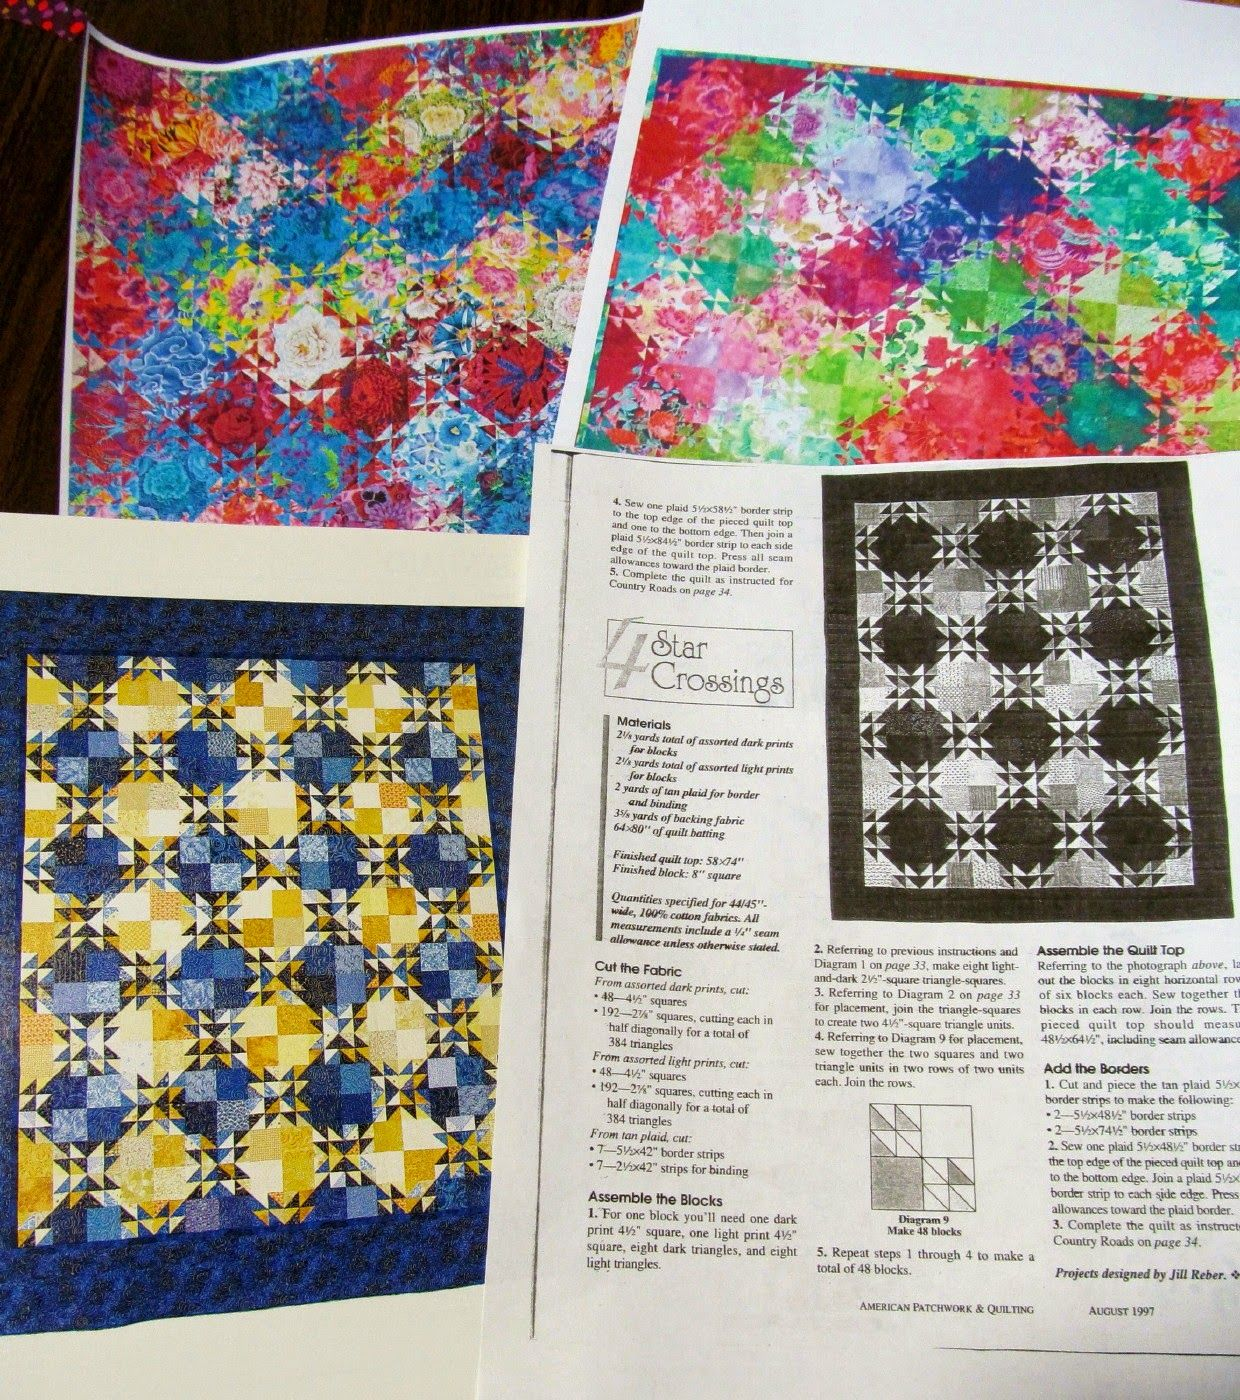 pattern quilt craft gardens tammy creative magazine april shannons collection better img was emporium published the shannon quilting homes s anniversary and american in patchwork issue